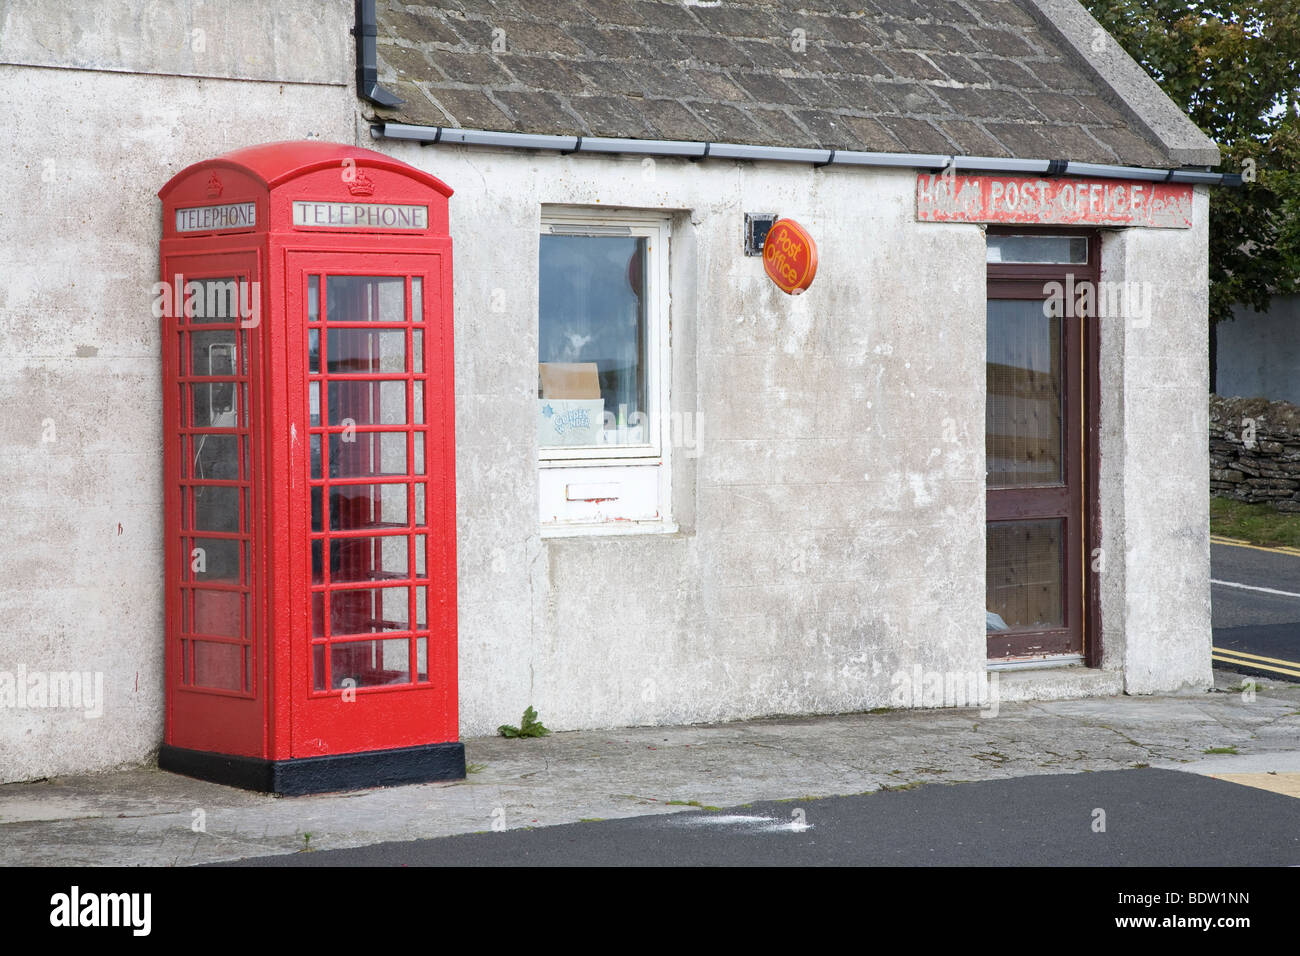 old post office with phone box of british telekom, orkney islands, scotland - Stock Image